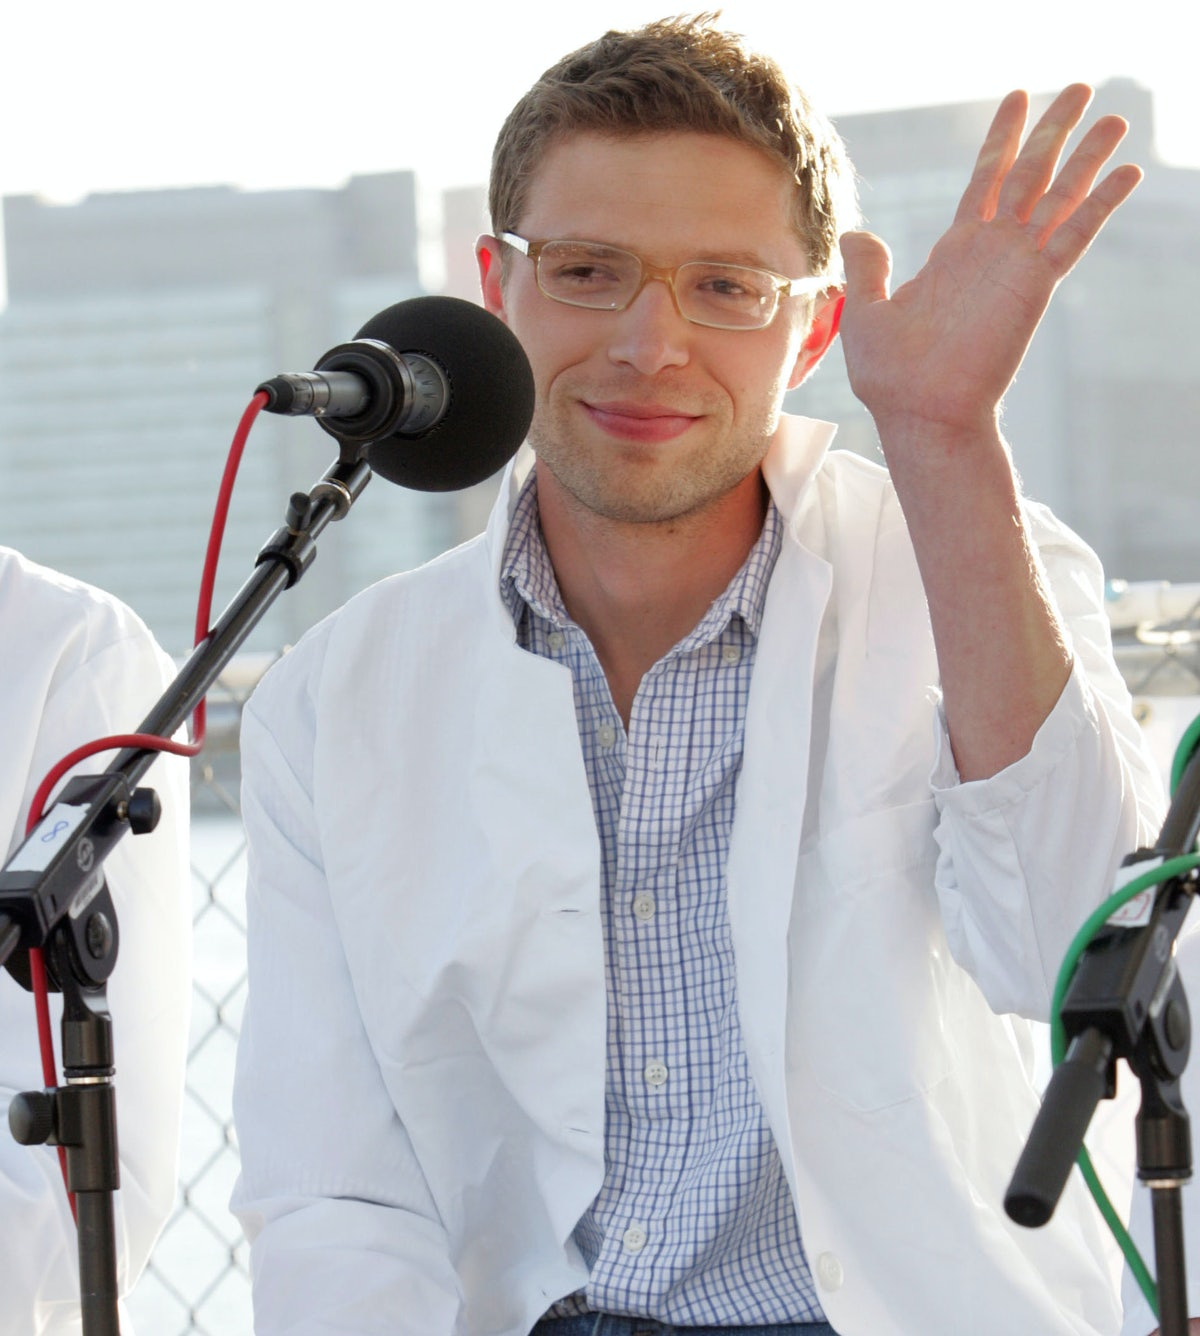 Jonah Lehrer is really sorry this time, he swears. | The New Republic